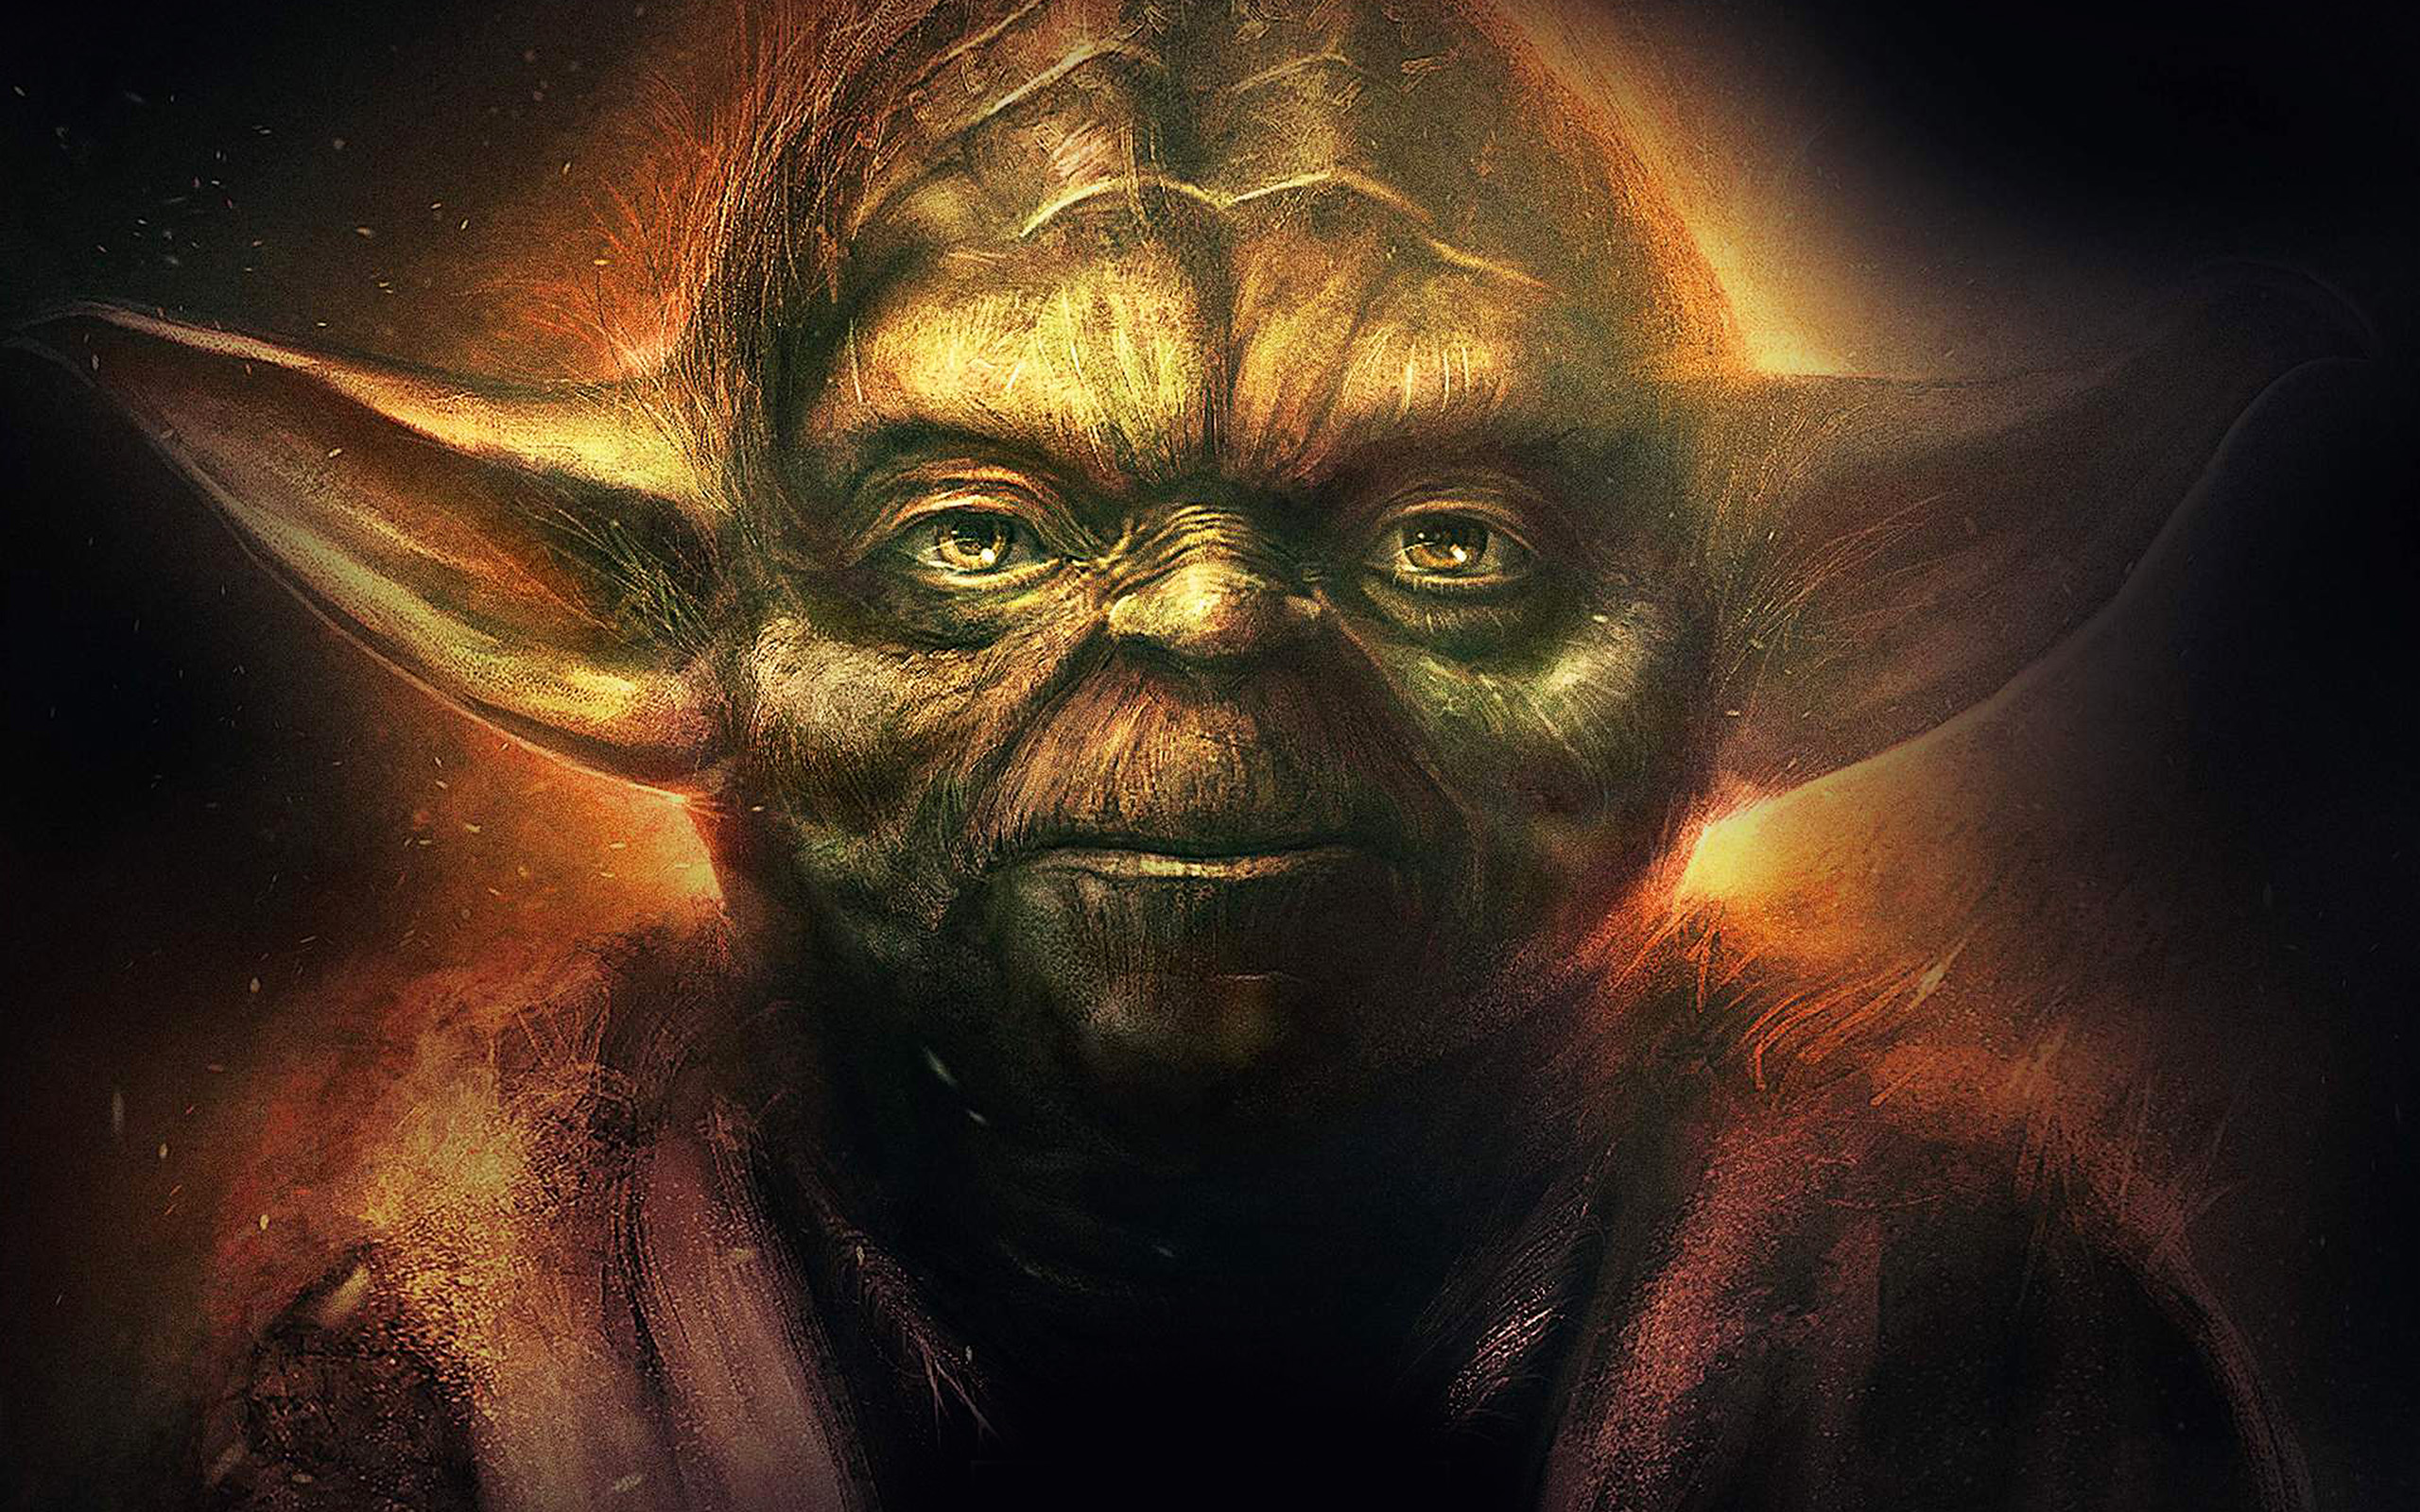 an79-yoda-starwars-art-dark-illlust-film-poster - Papers.co